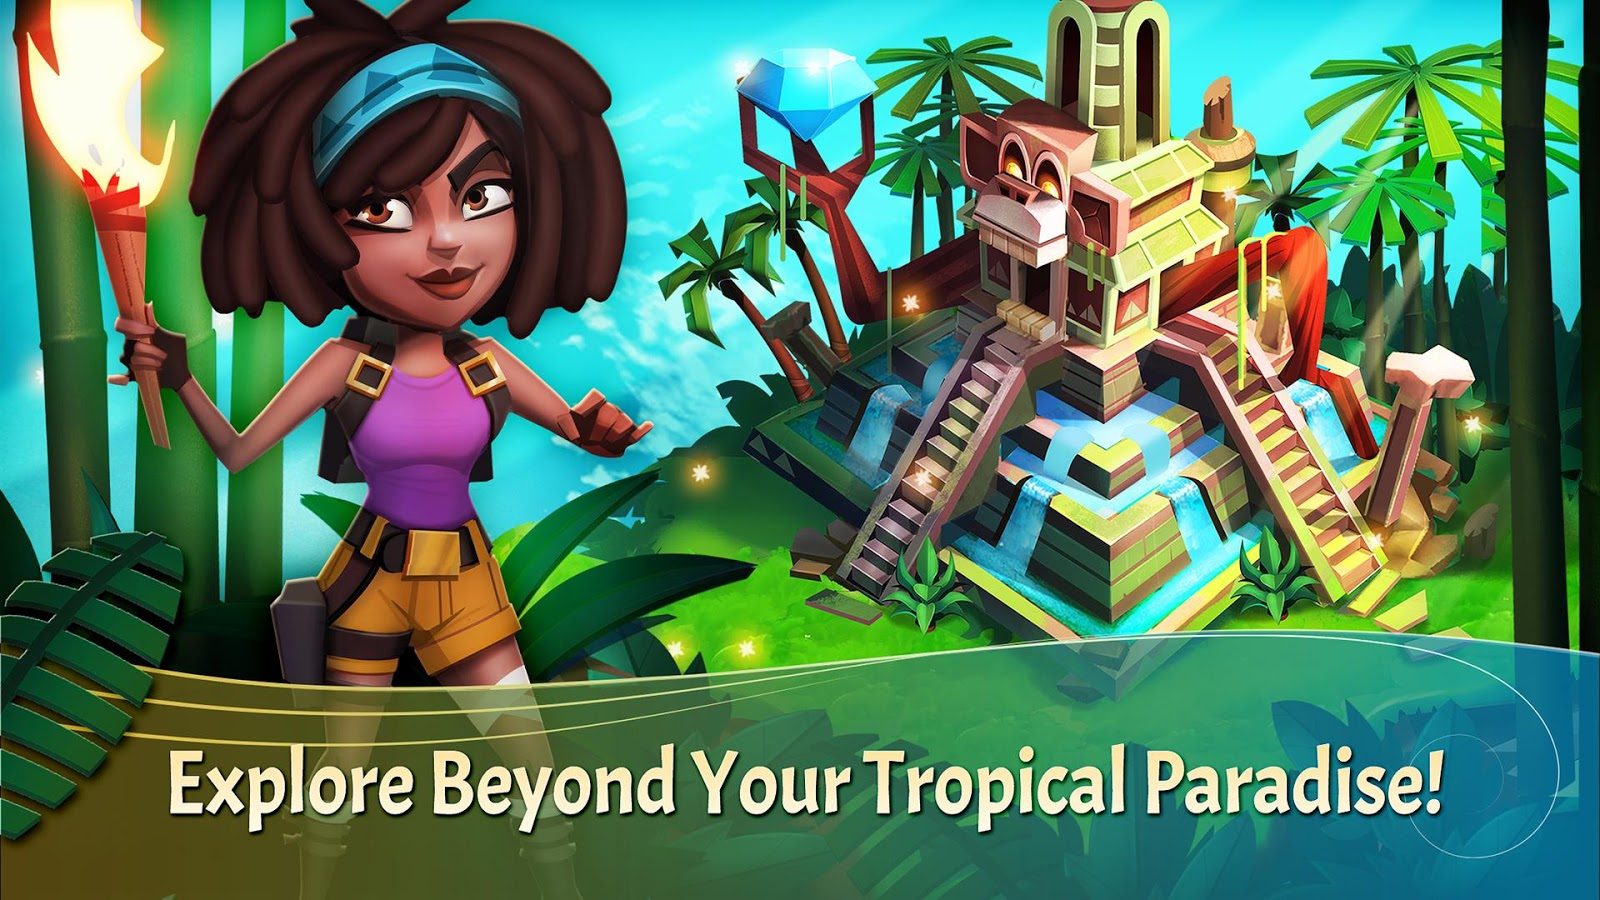 FarmVille: Tropic Escape Screenshot 1